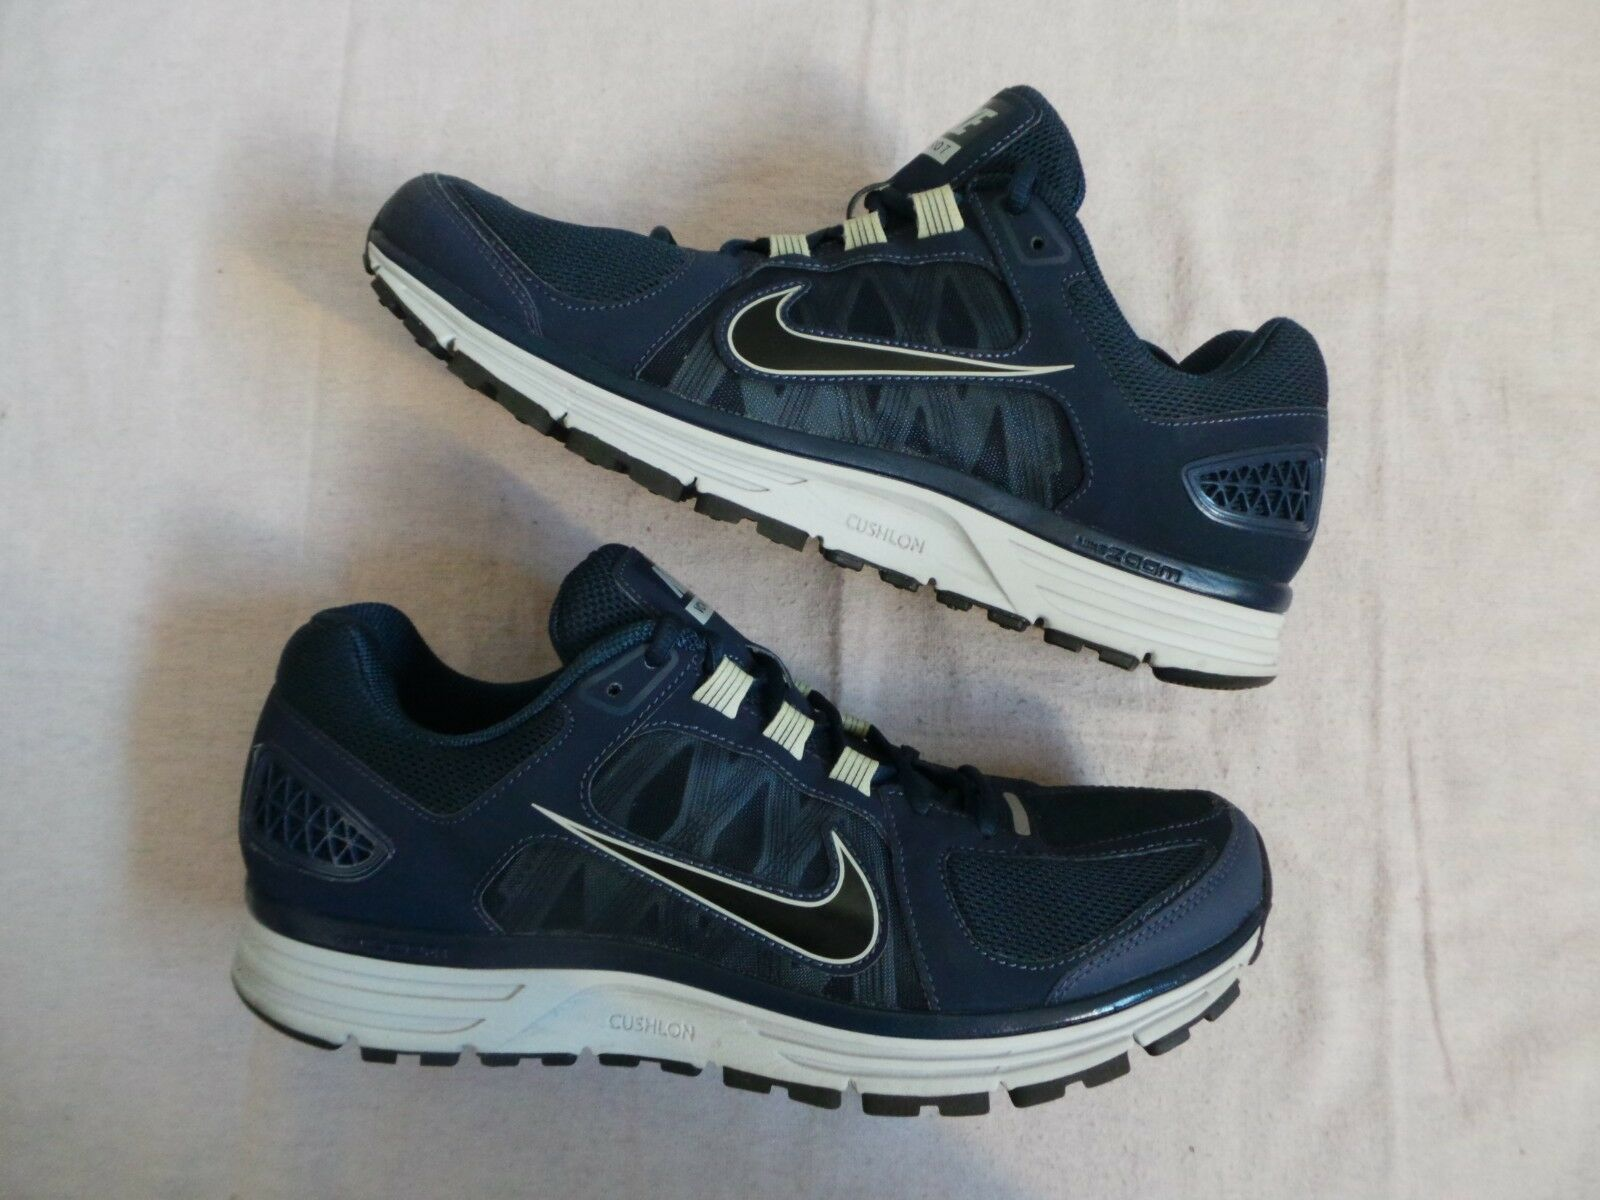 Seasonal clearance sale Nike Air Zoom Vomero 7 + Vomero+ size 11 VNDS worn 2X twice Price reduction